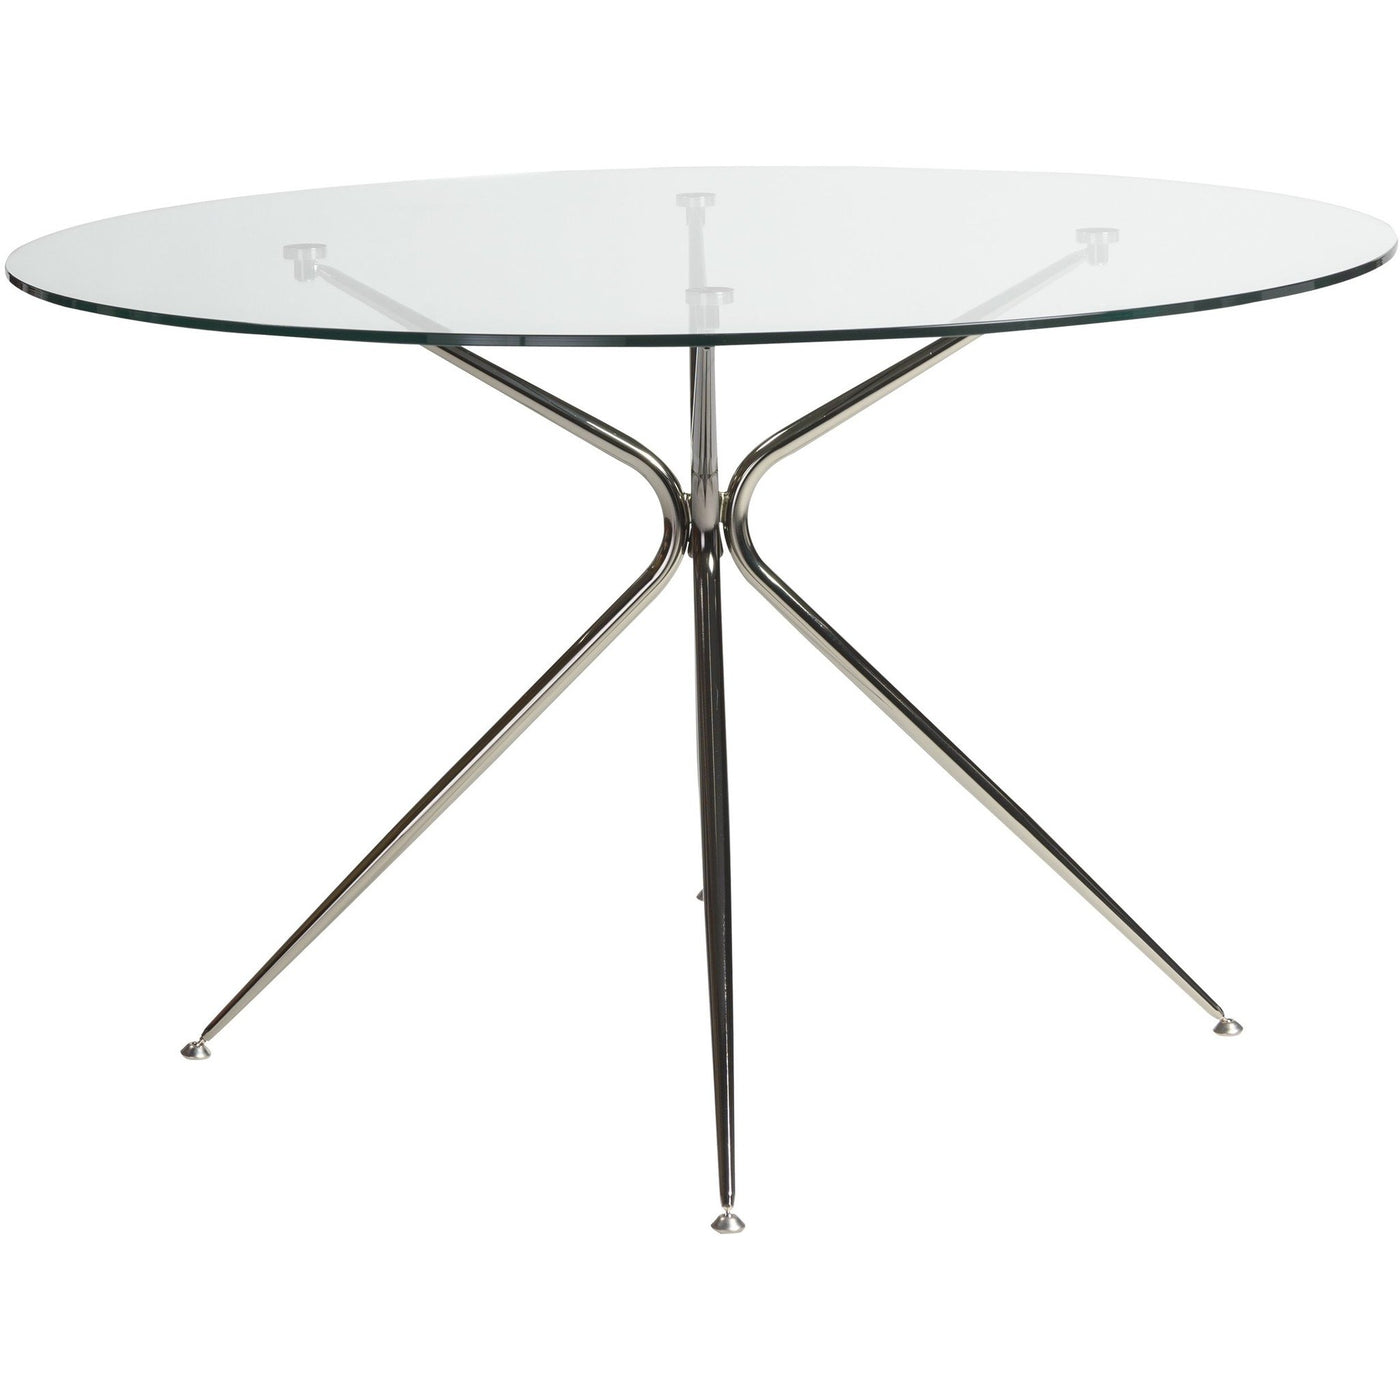 48 inch dining table beach atos 48inch round dining table fast ship furniture shop online atos 48 inch round dining table with glass top all